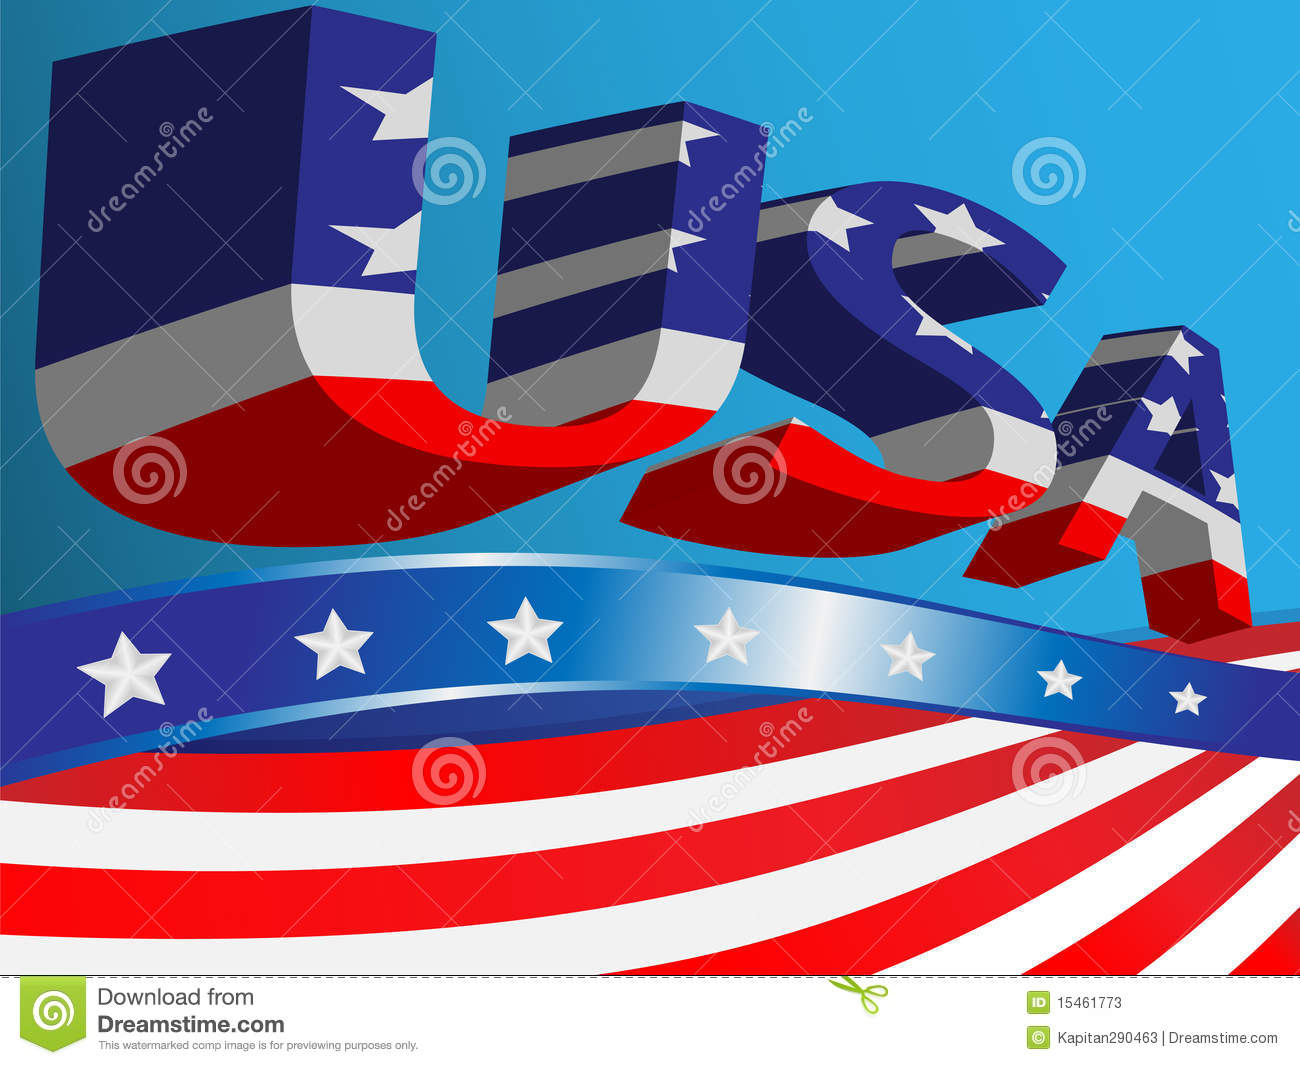 Blue background with ribbons of the flag USA and abbreviation.